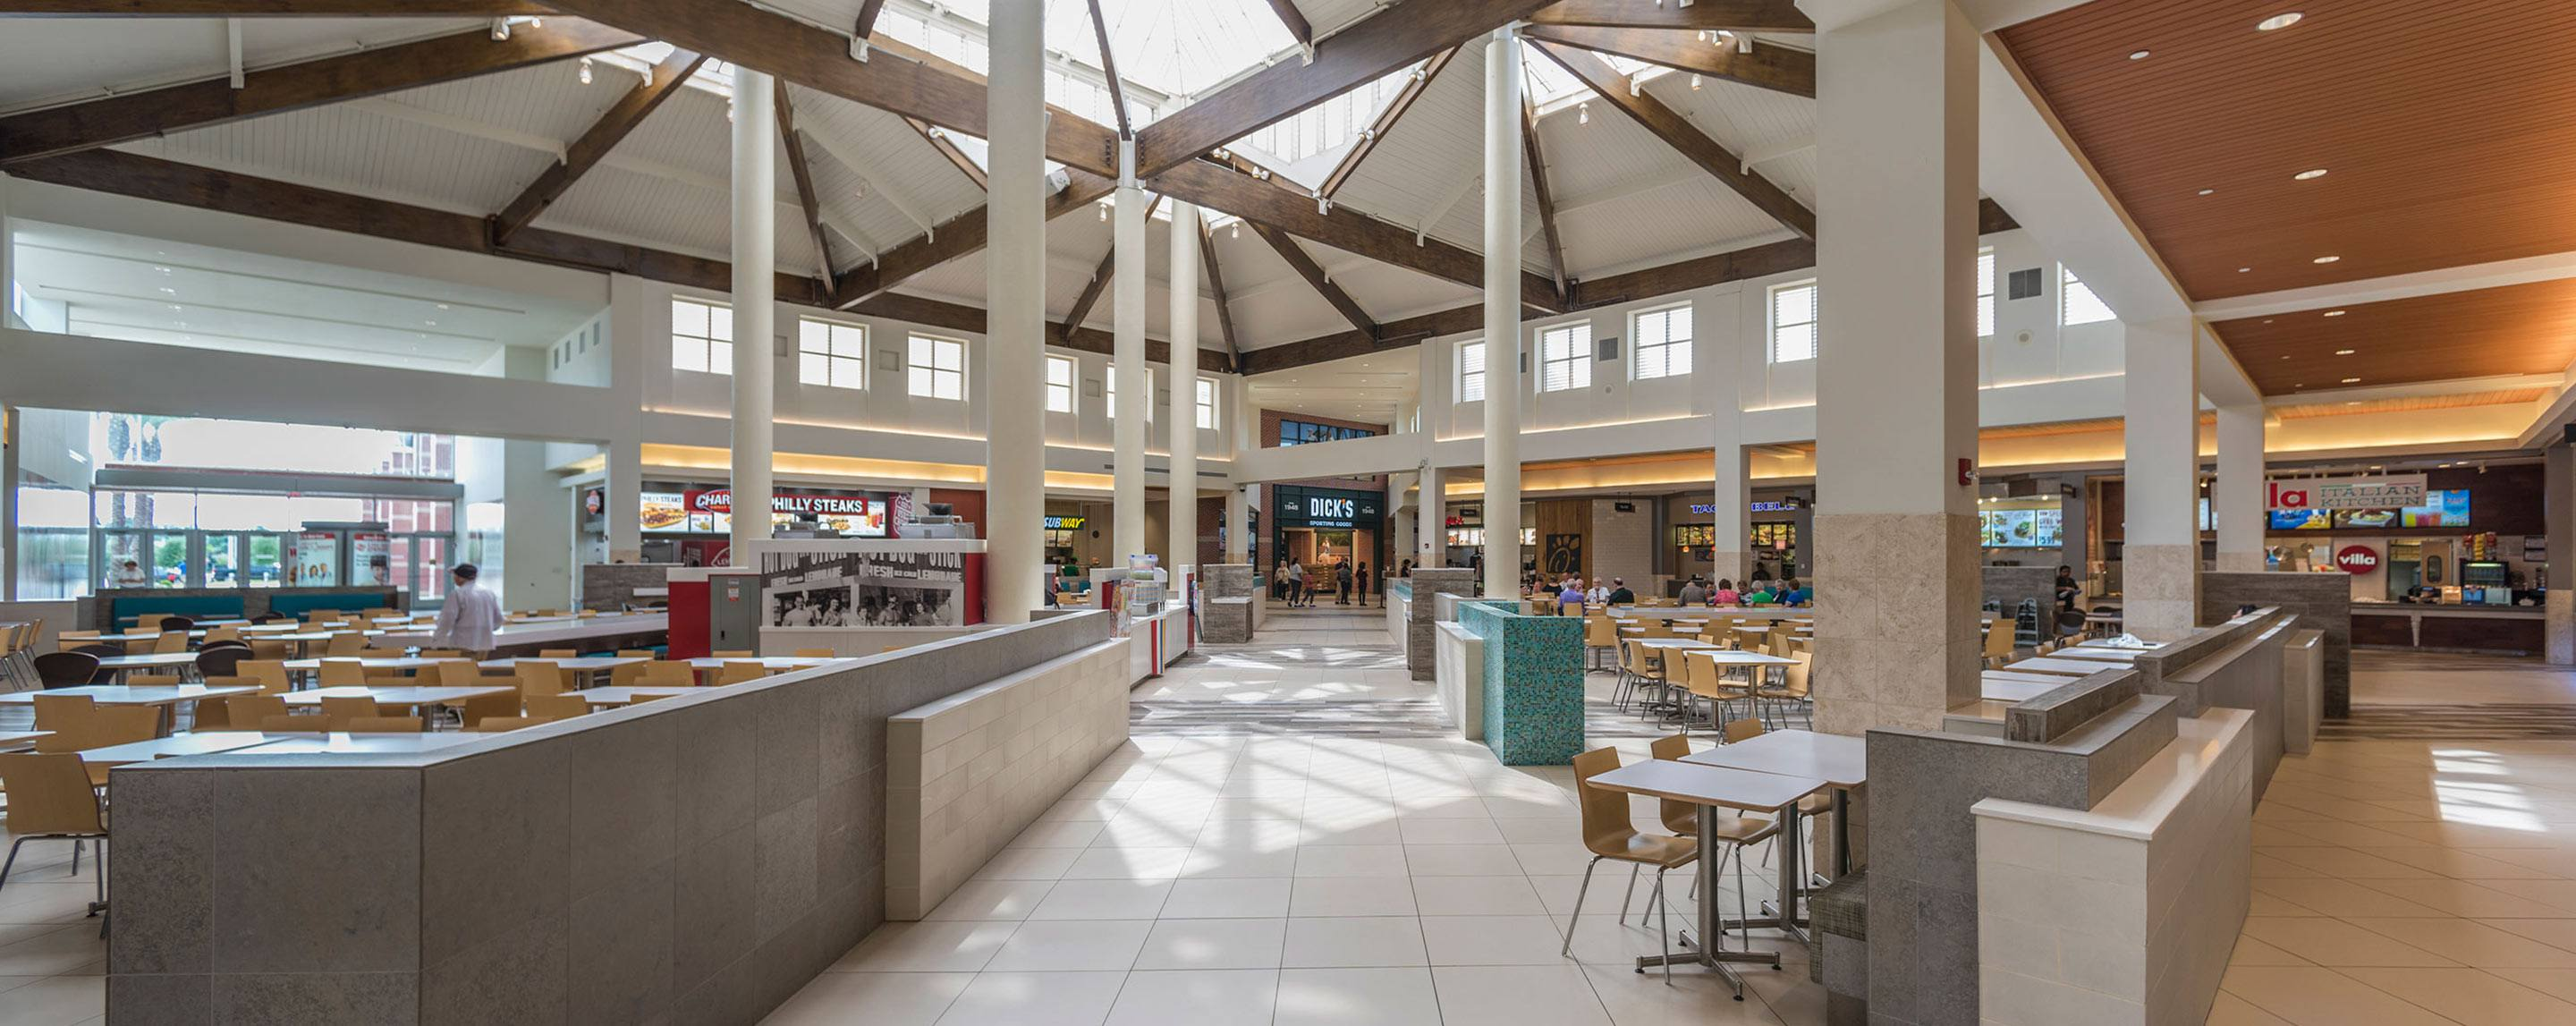 Booths and tables stand in a mall food court. Restaurants including Subway line the sides.